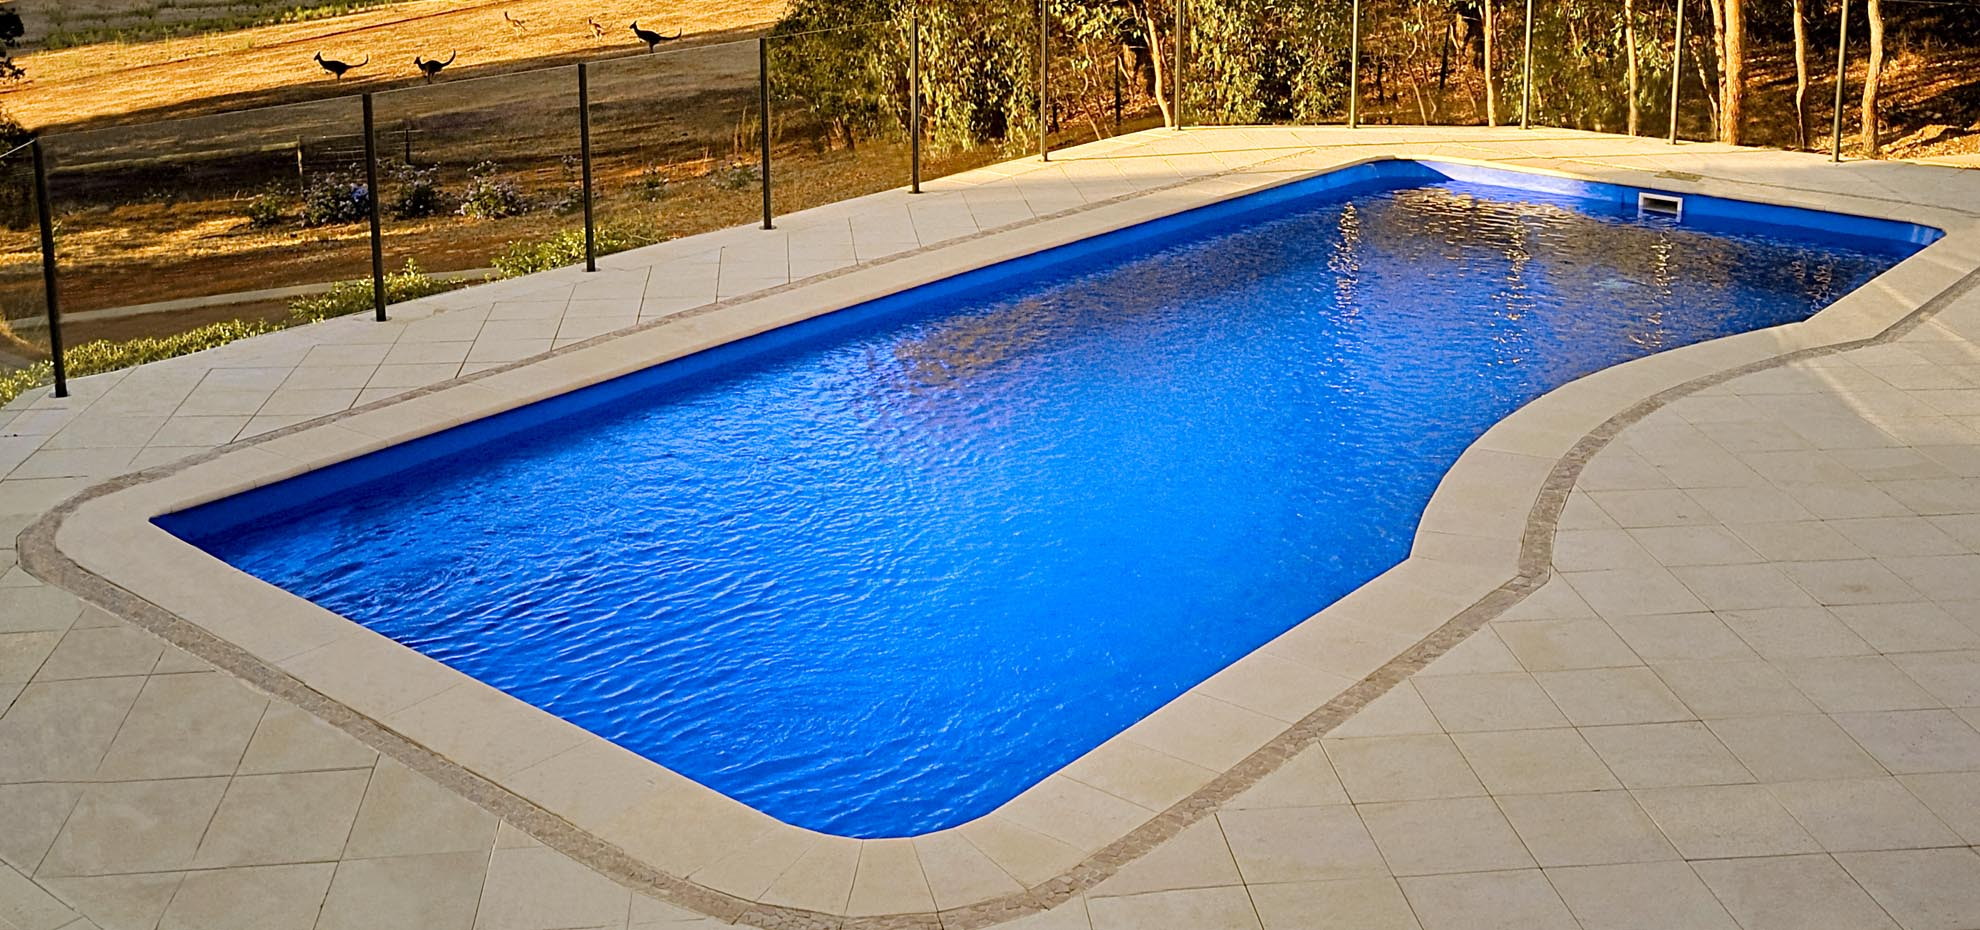 Moroccan design fibreglass pool by Leisure Pools